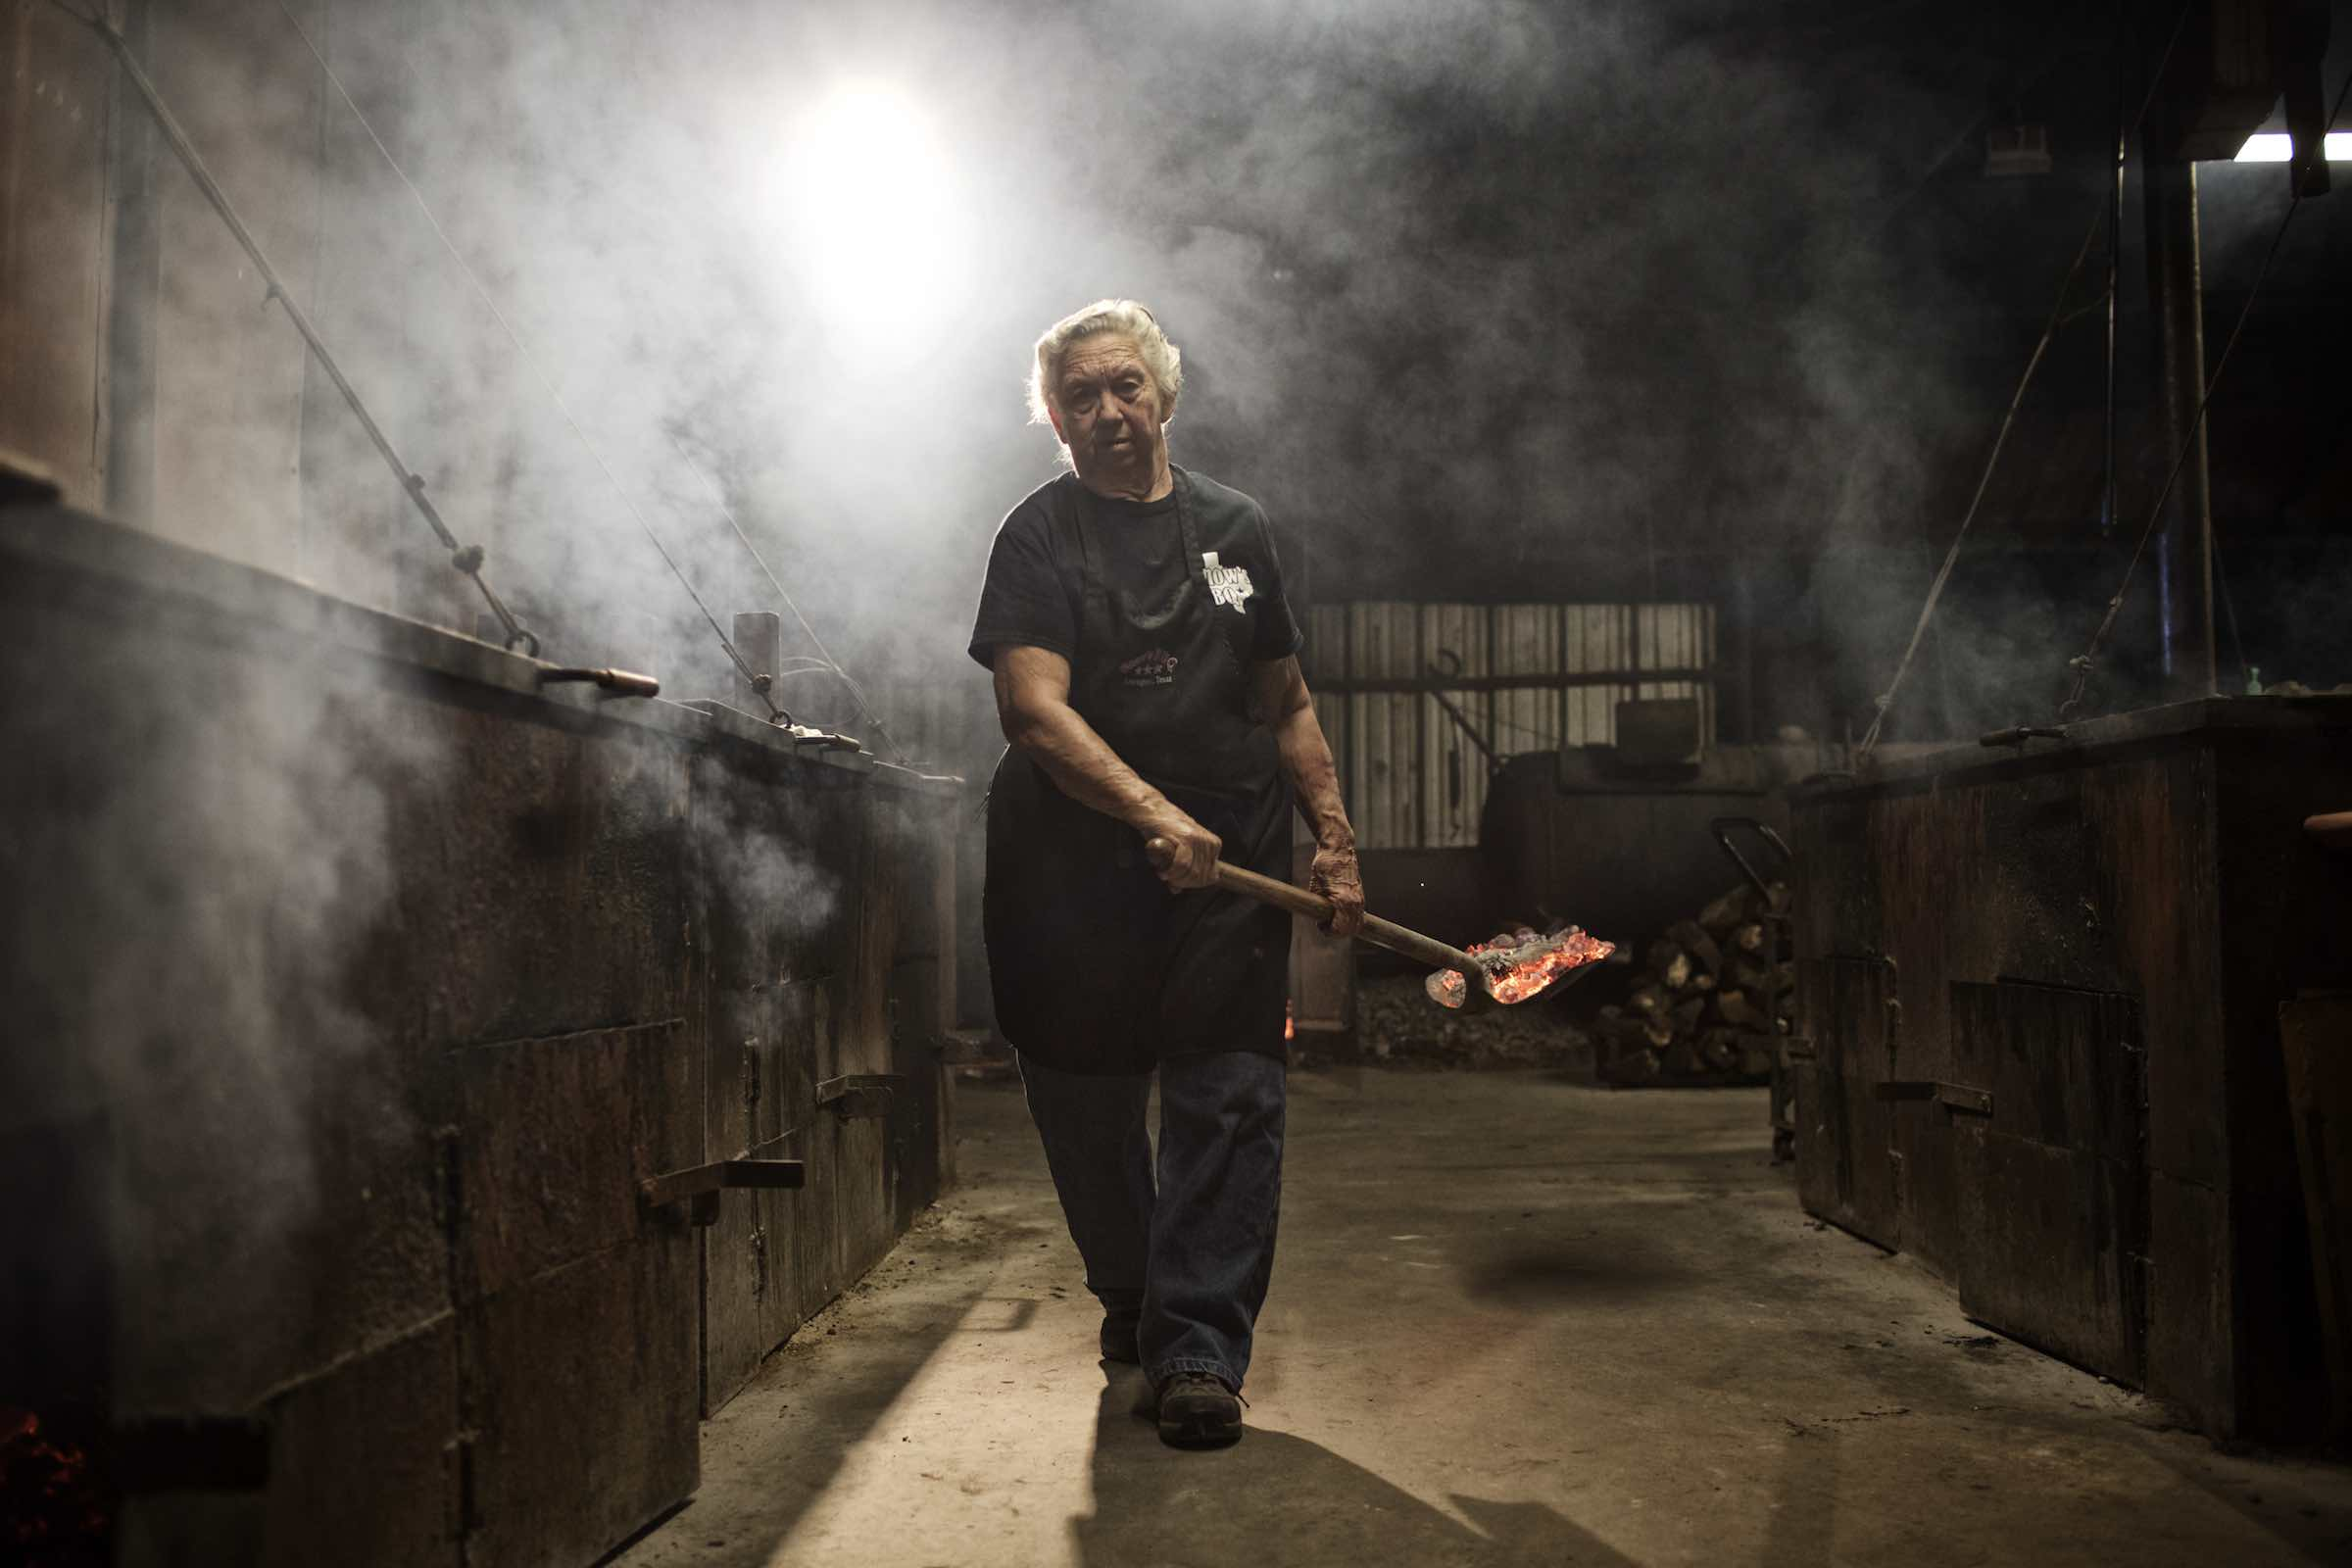 Jody Horton Photography - Pit master carrying hot coals on a shovel.